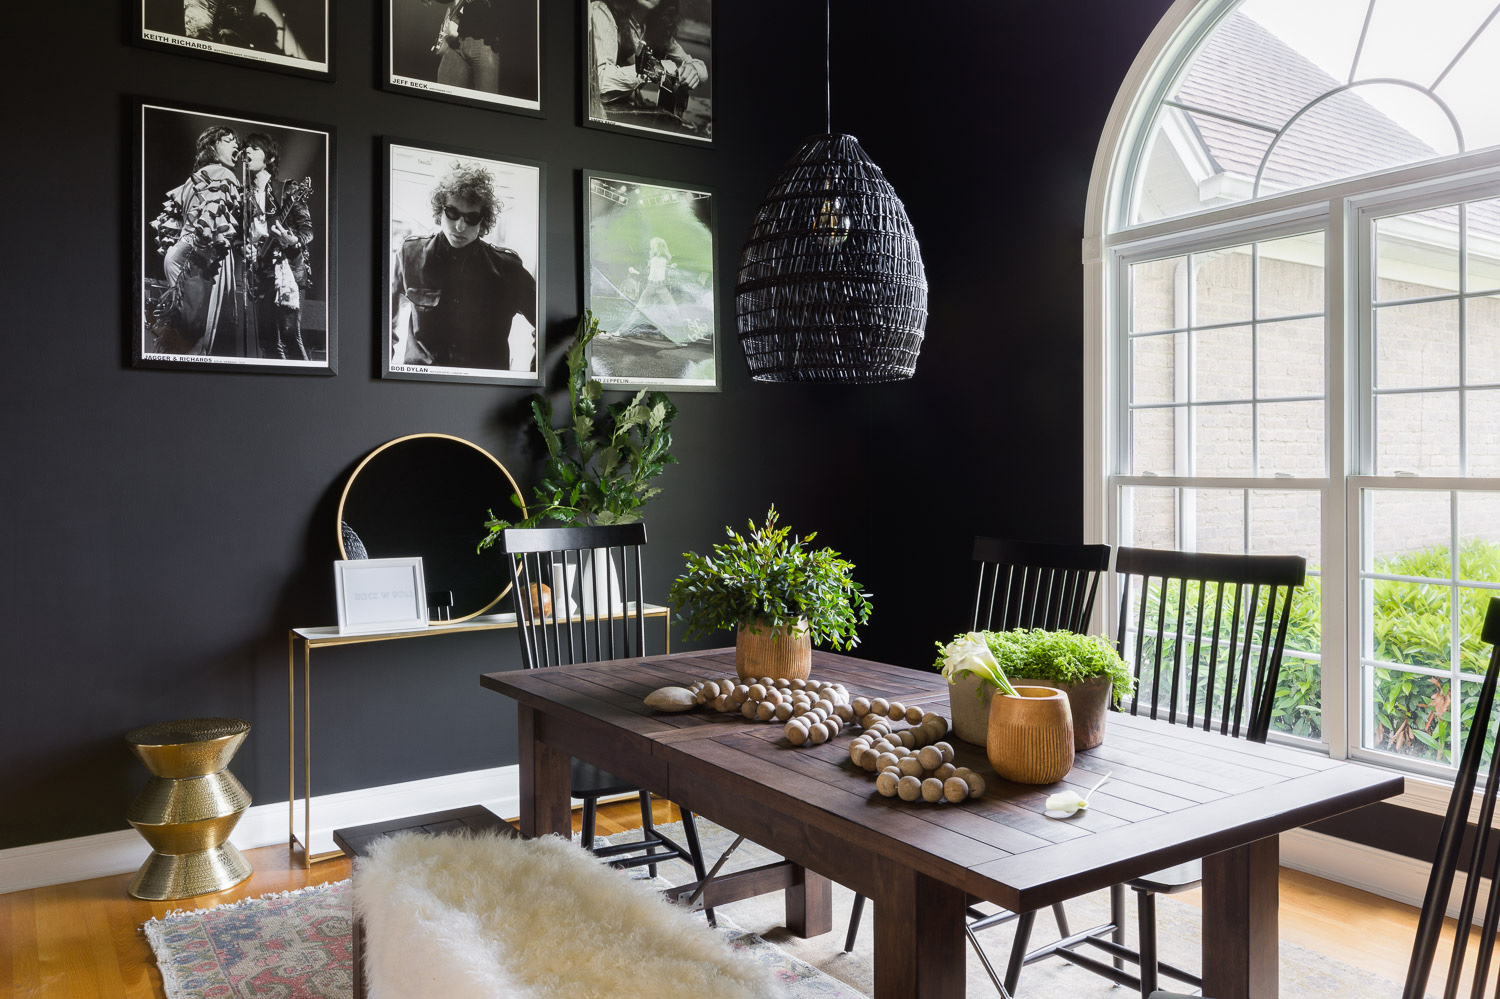 Ready for the new neutral room color? It's black.